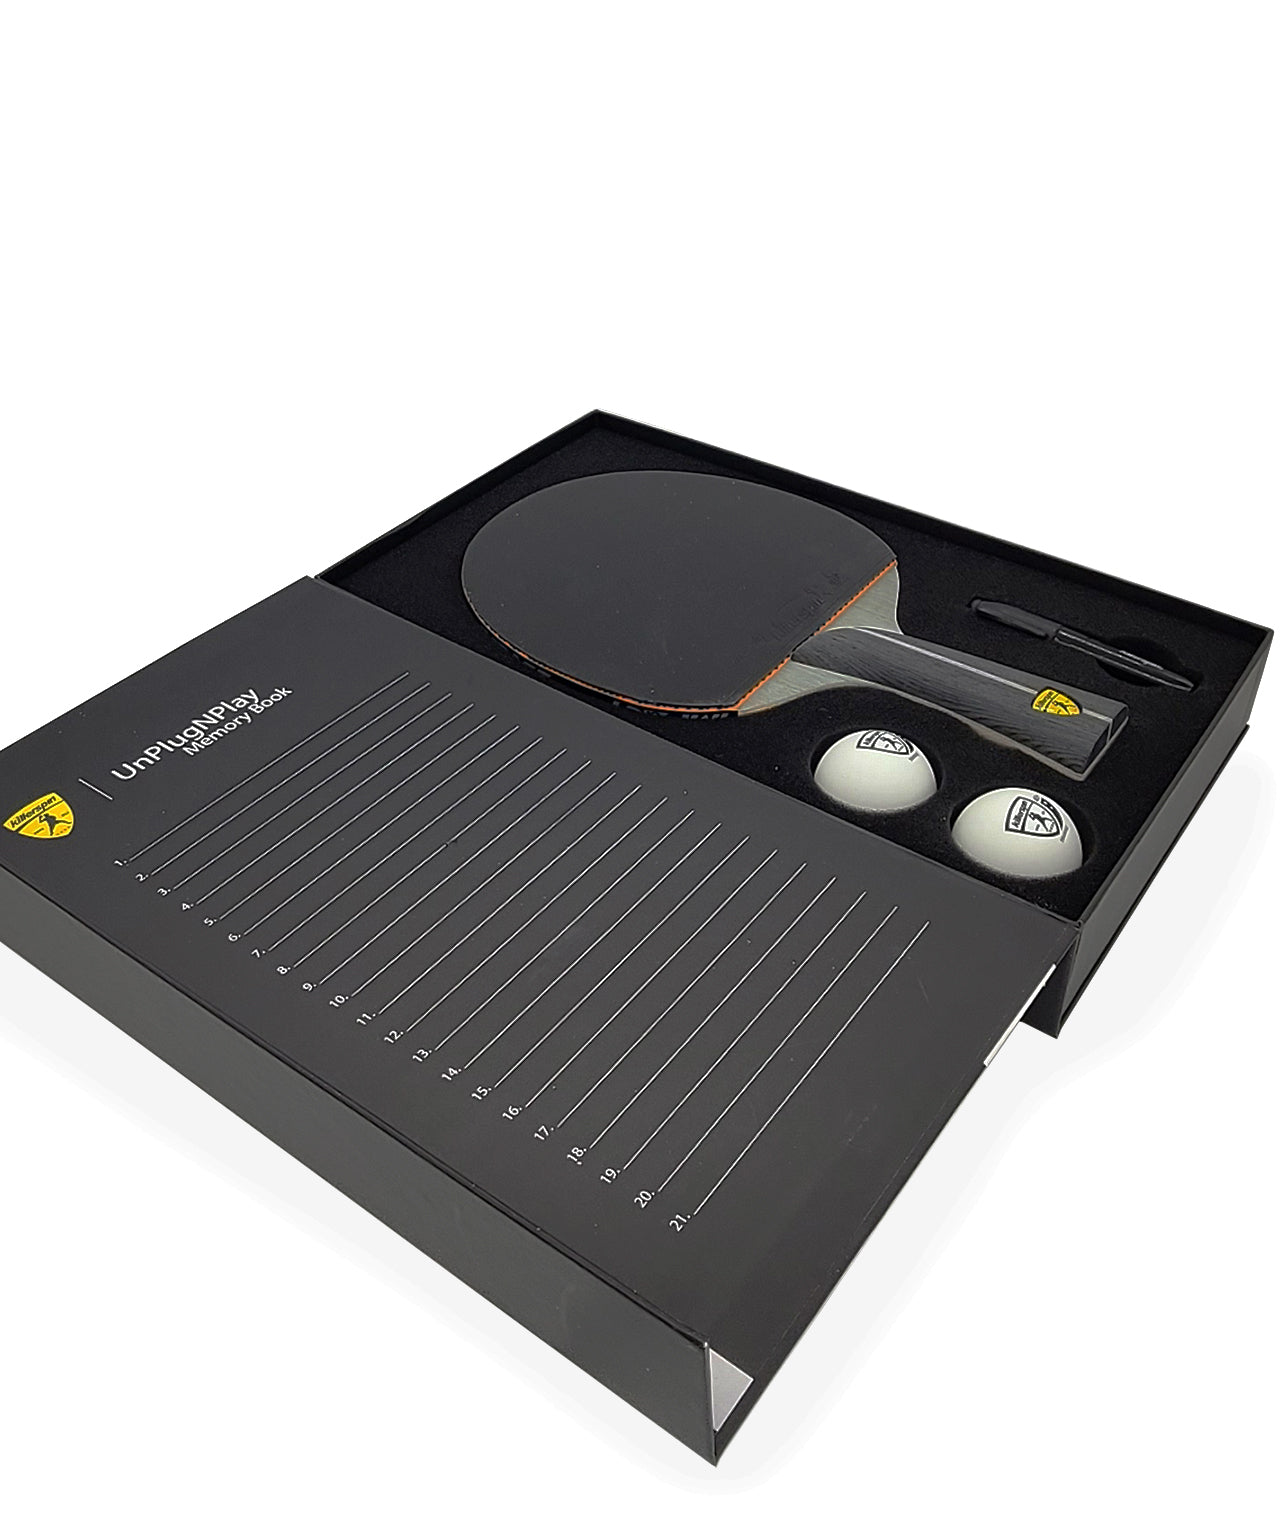 killerspin-ping-pong-paddle-impact-D9-smart-grip-memory-book-racket-balls